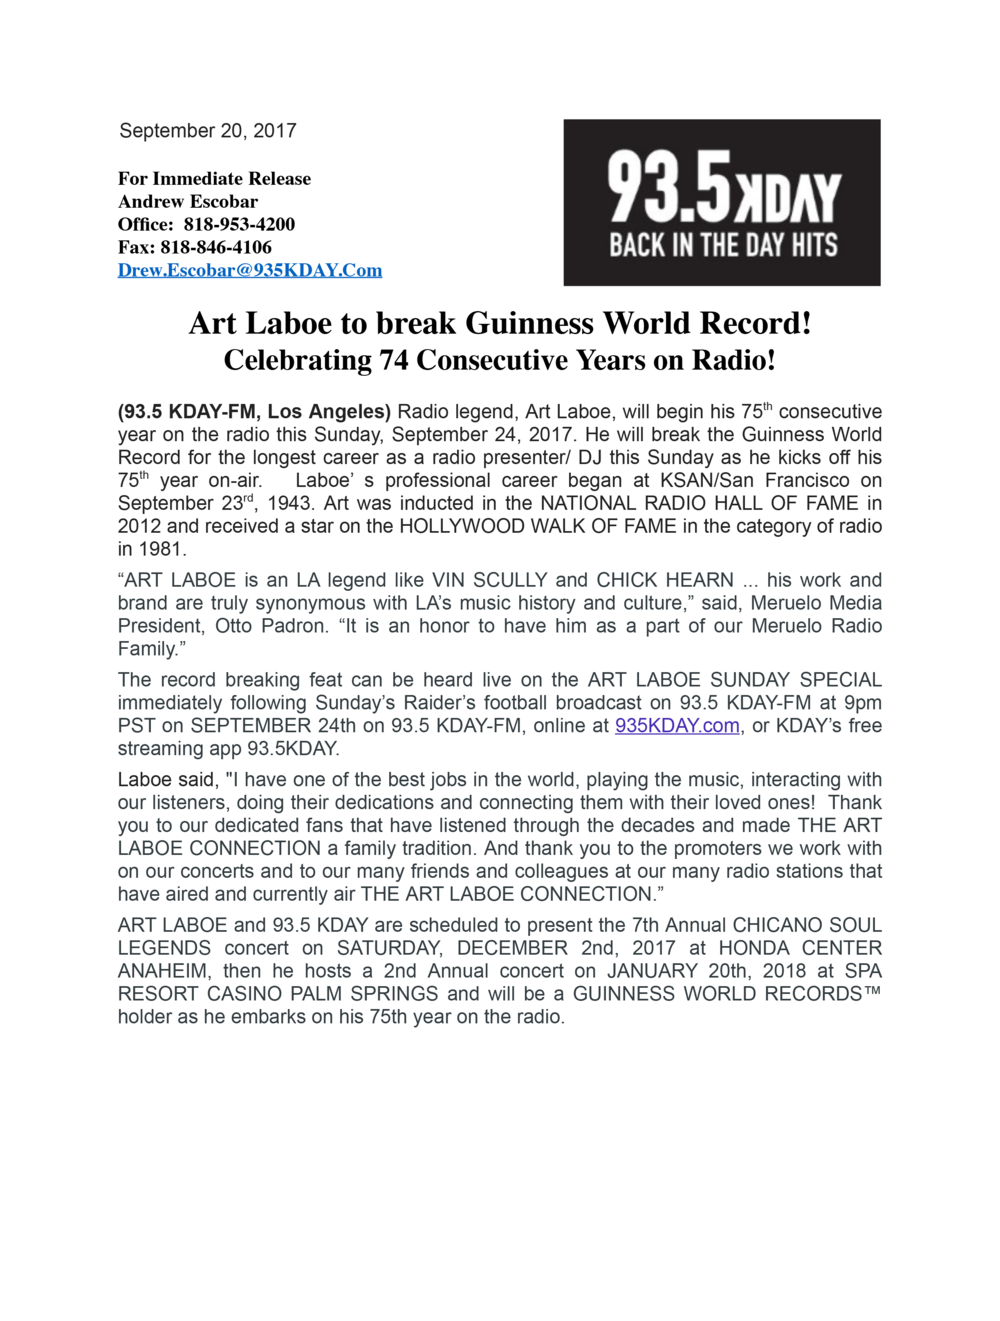 Art Laboe Breaks Guiness World Record Sunday-1.png